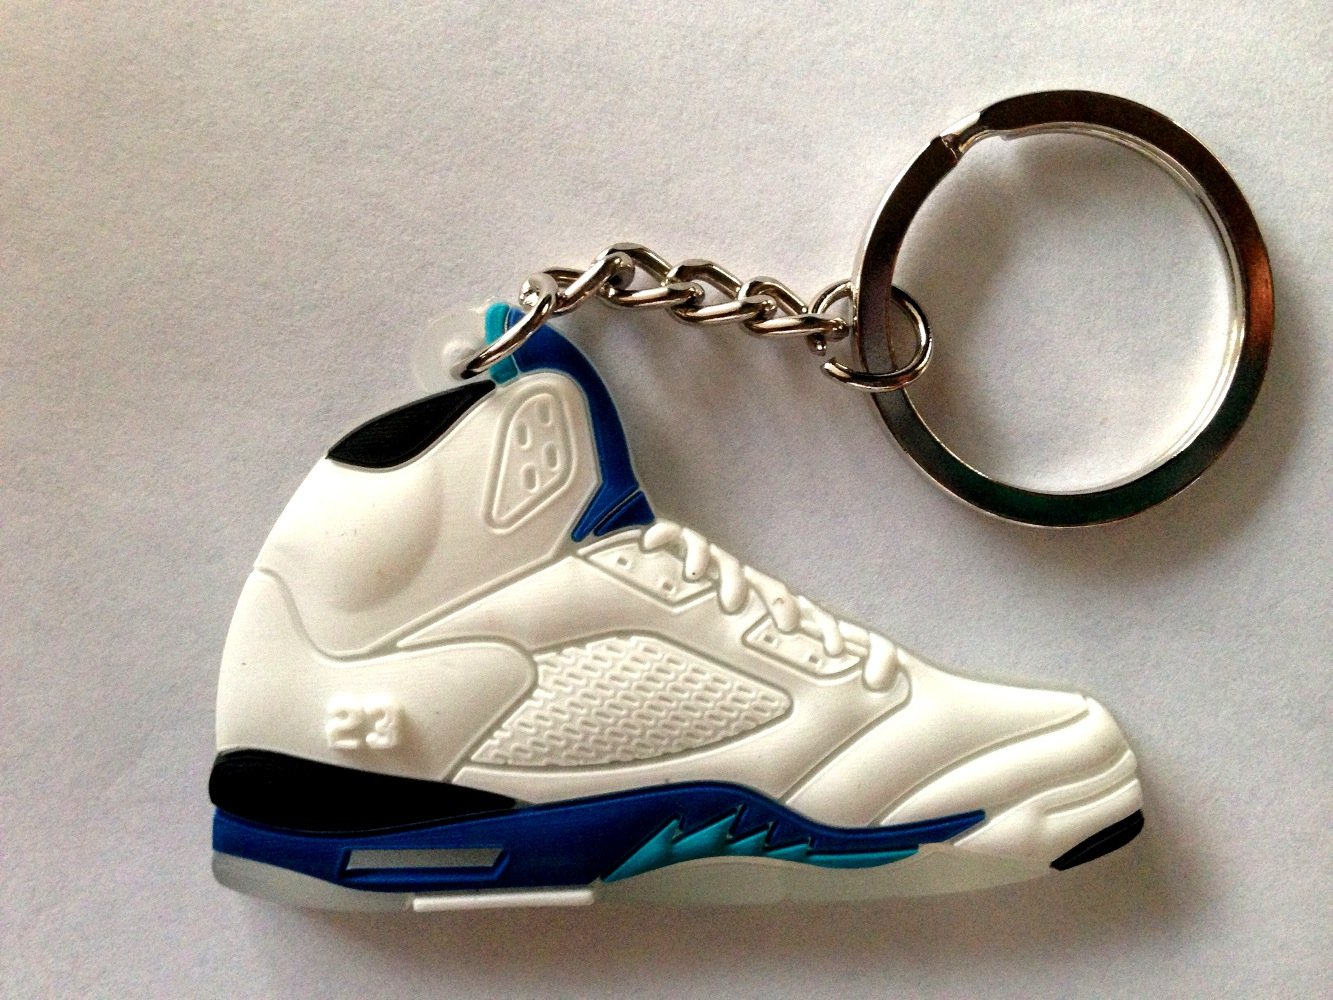 3259a881a7e63a Get Quotations · Air Jordan V 5 White Royal Blue Stealth Grape Chicago  Bulls Sneakers Shoes Keychain Keyring